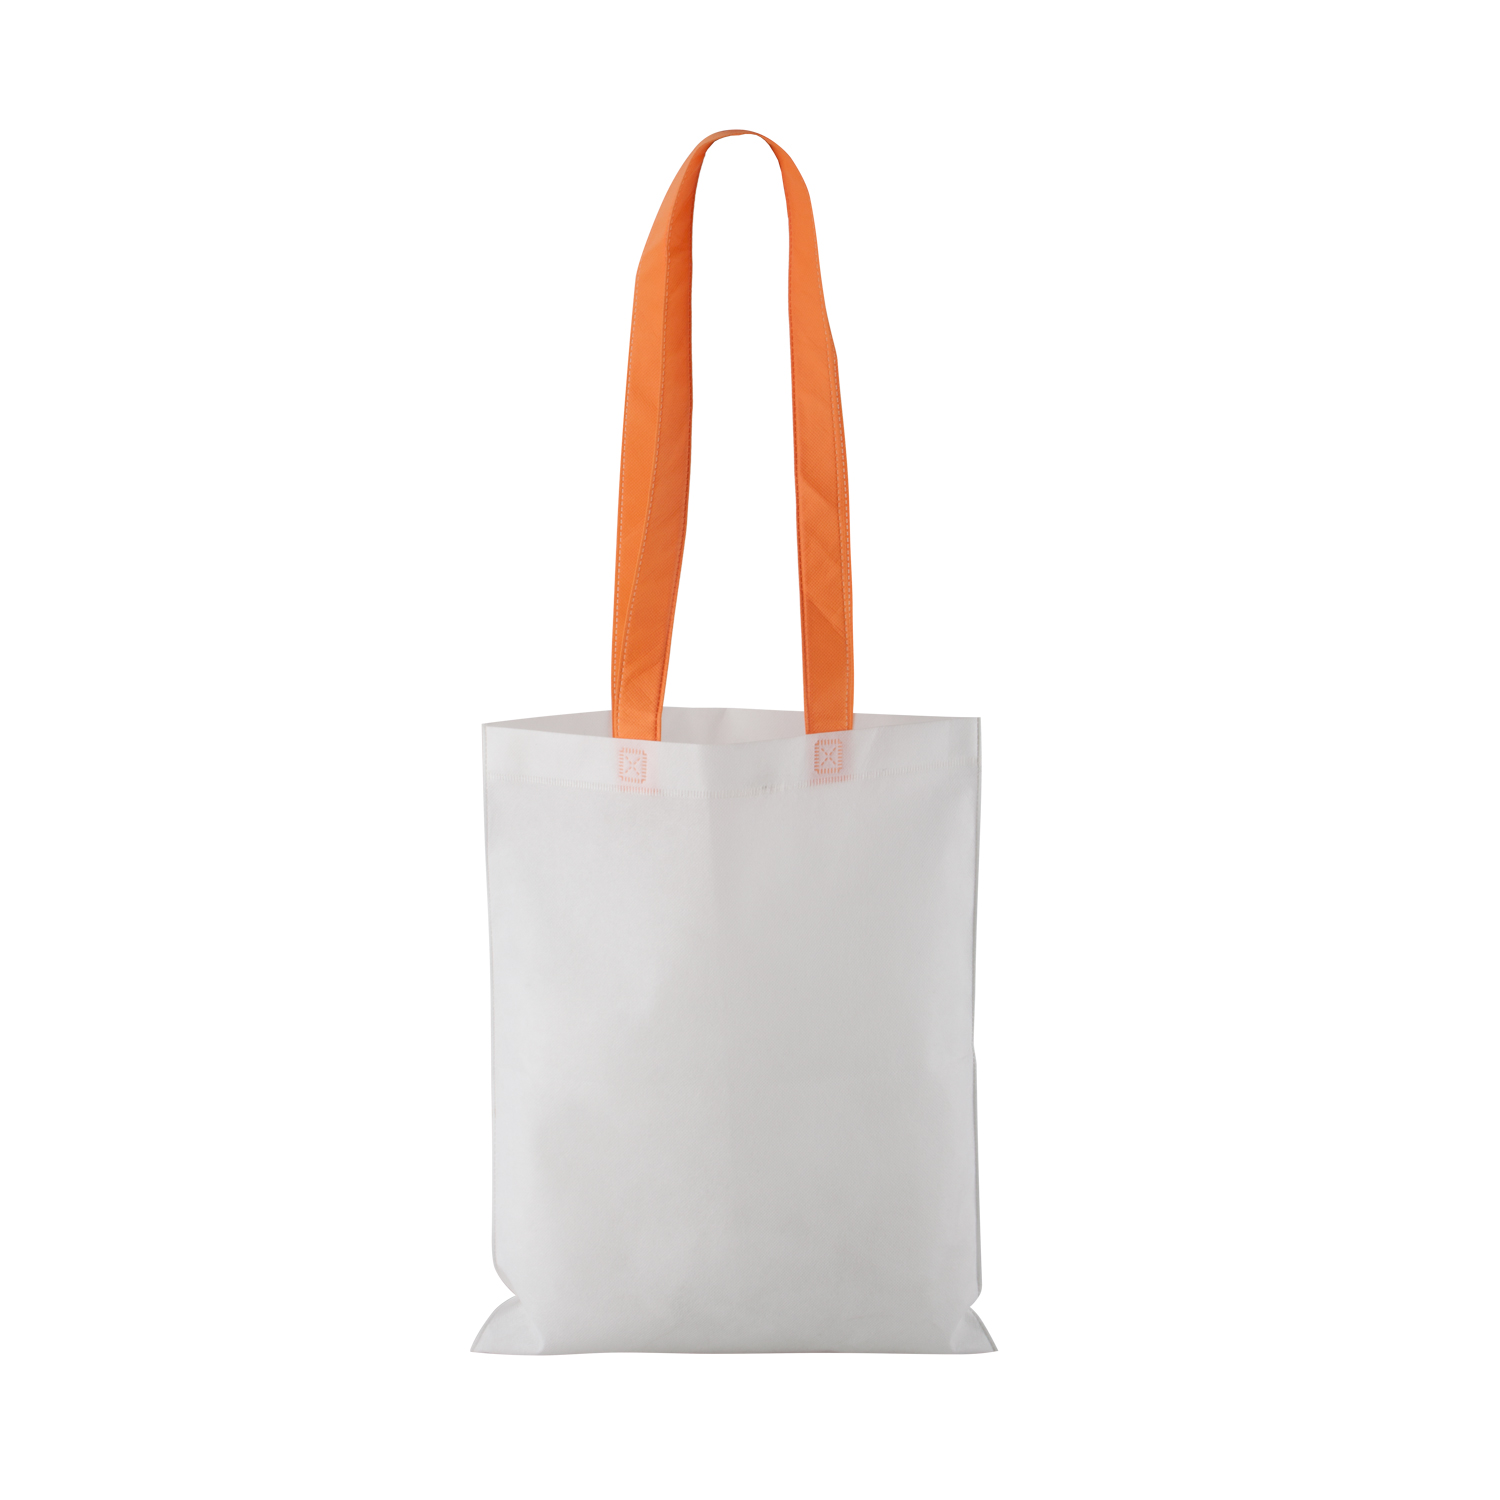 Non-woven Shopping bag with long handle (33 x 41,5 cm) - hmi17098-11 (Orange)